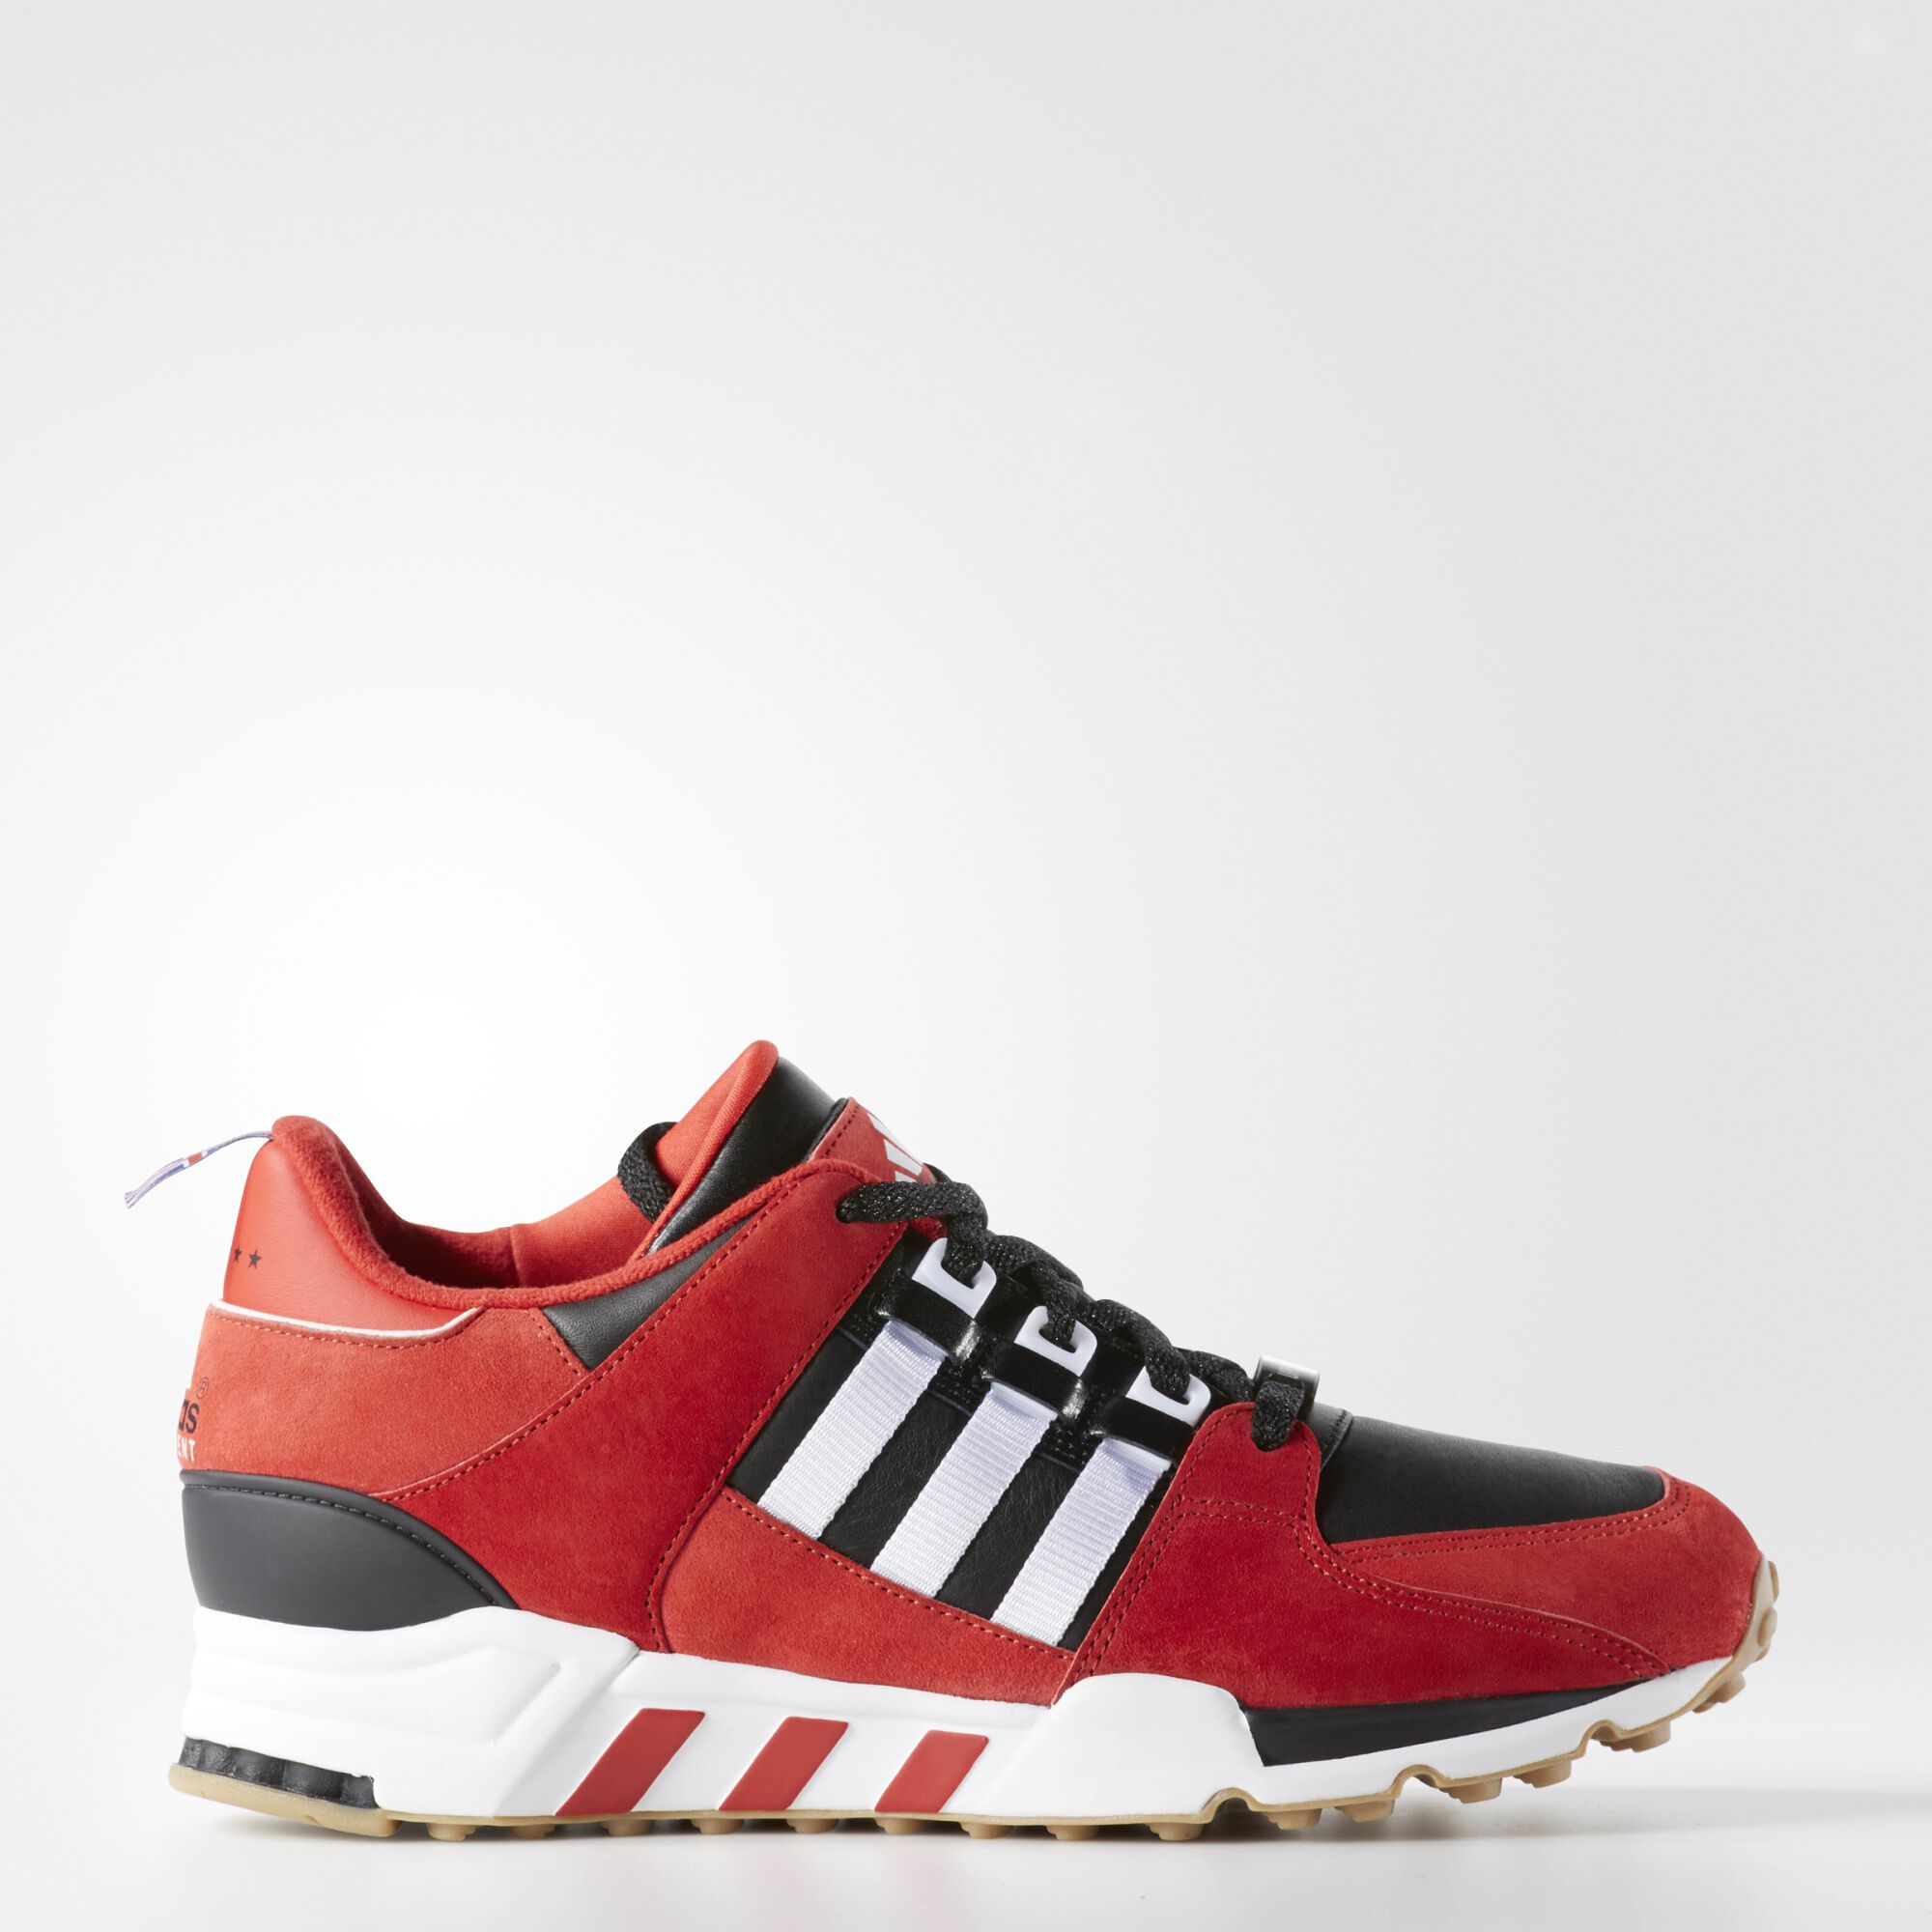 adidas shoes sale in london